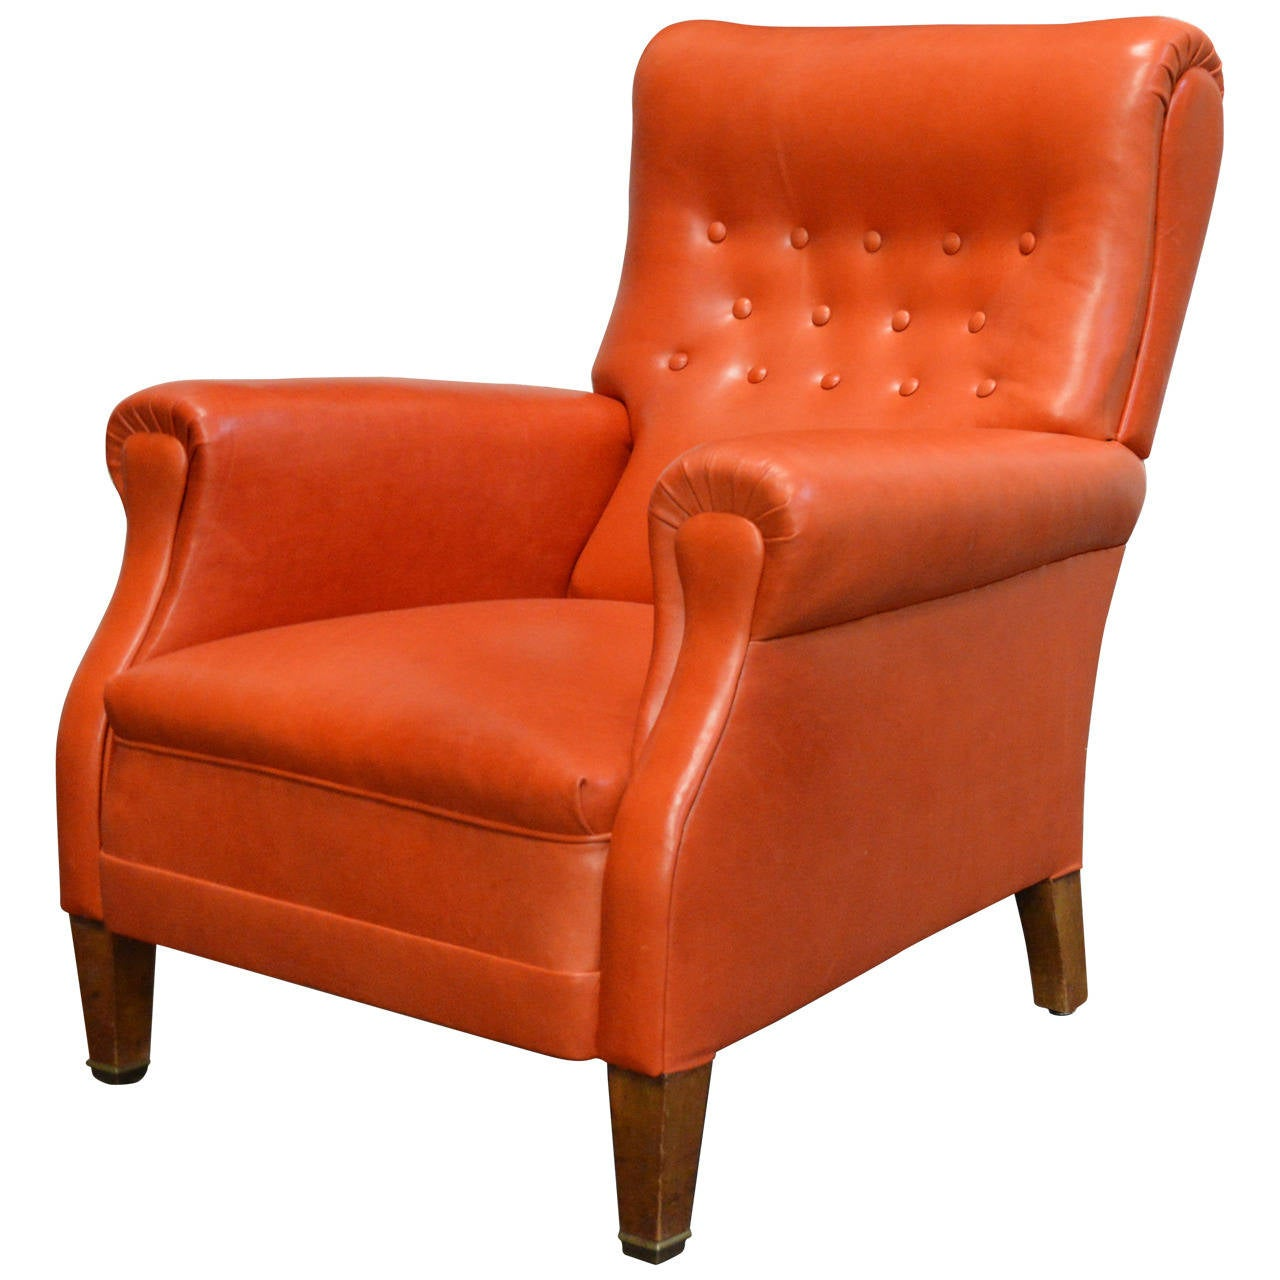 Orange Leather Chair Vintage Swedish Orange Leather Lounge Chair At 1stdibs